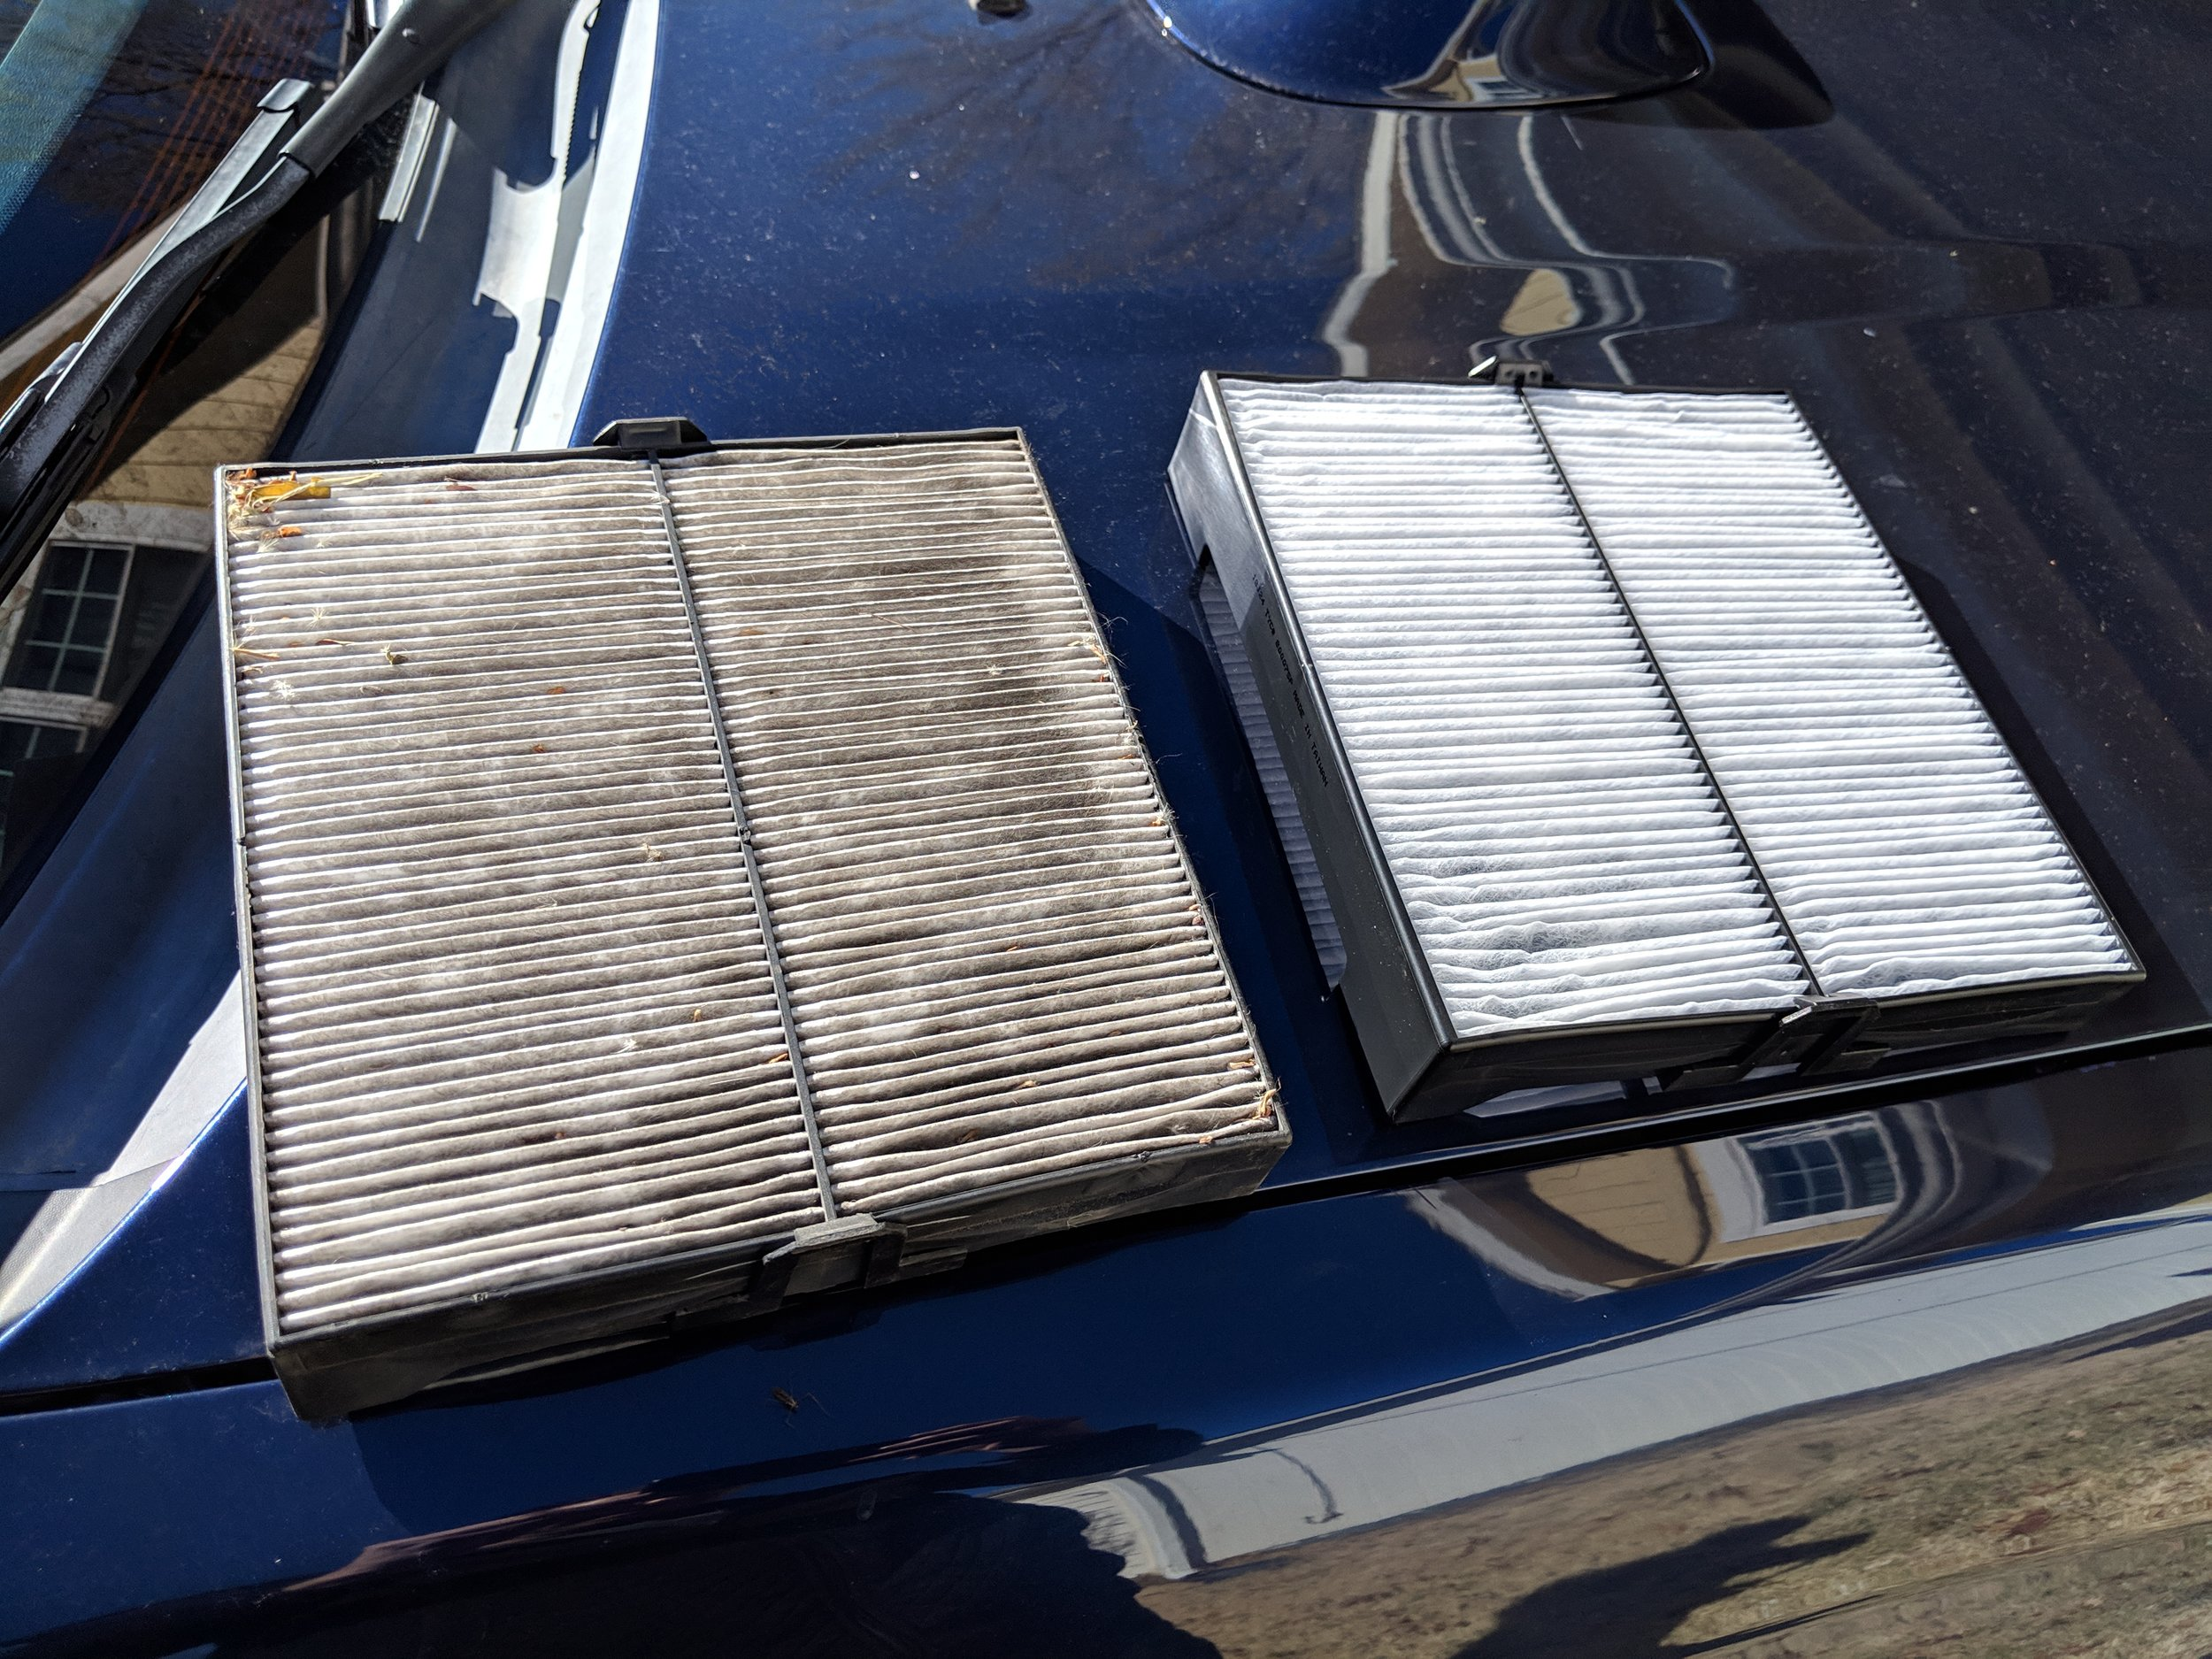 Today's replacement wasn't as bad. Your replacement time frame should be 30k miles or 2 years, whichever comes first. Mine is over 3 years old.  TYC Forester cabin air filter